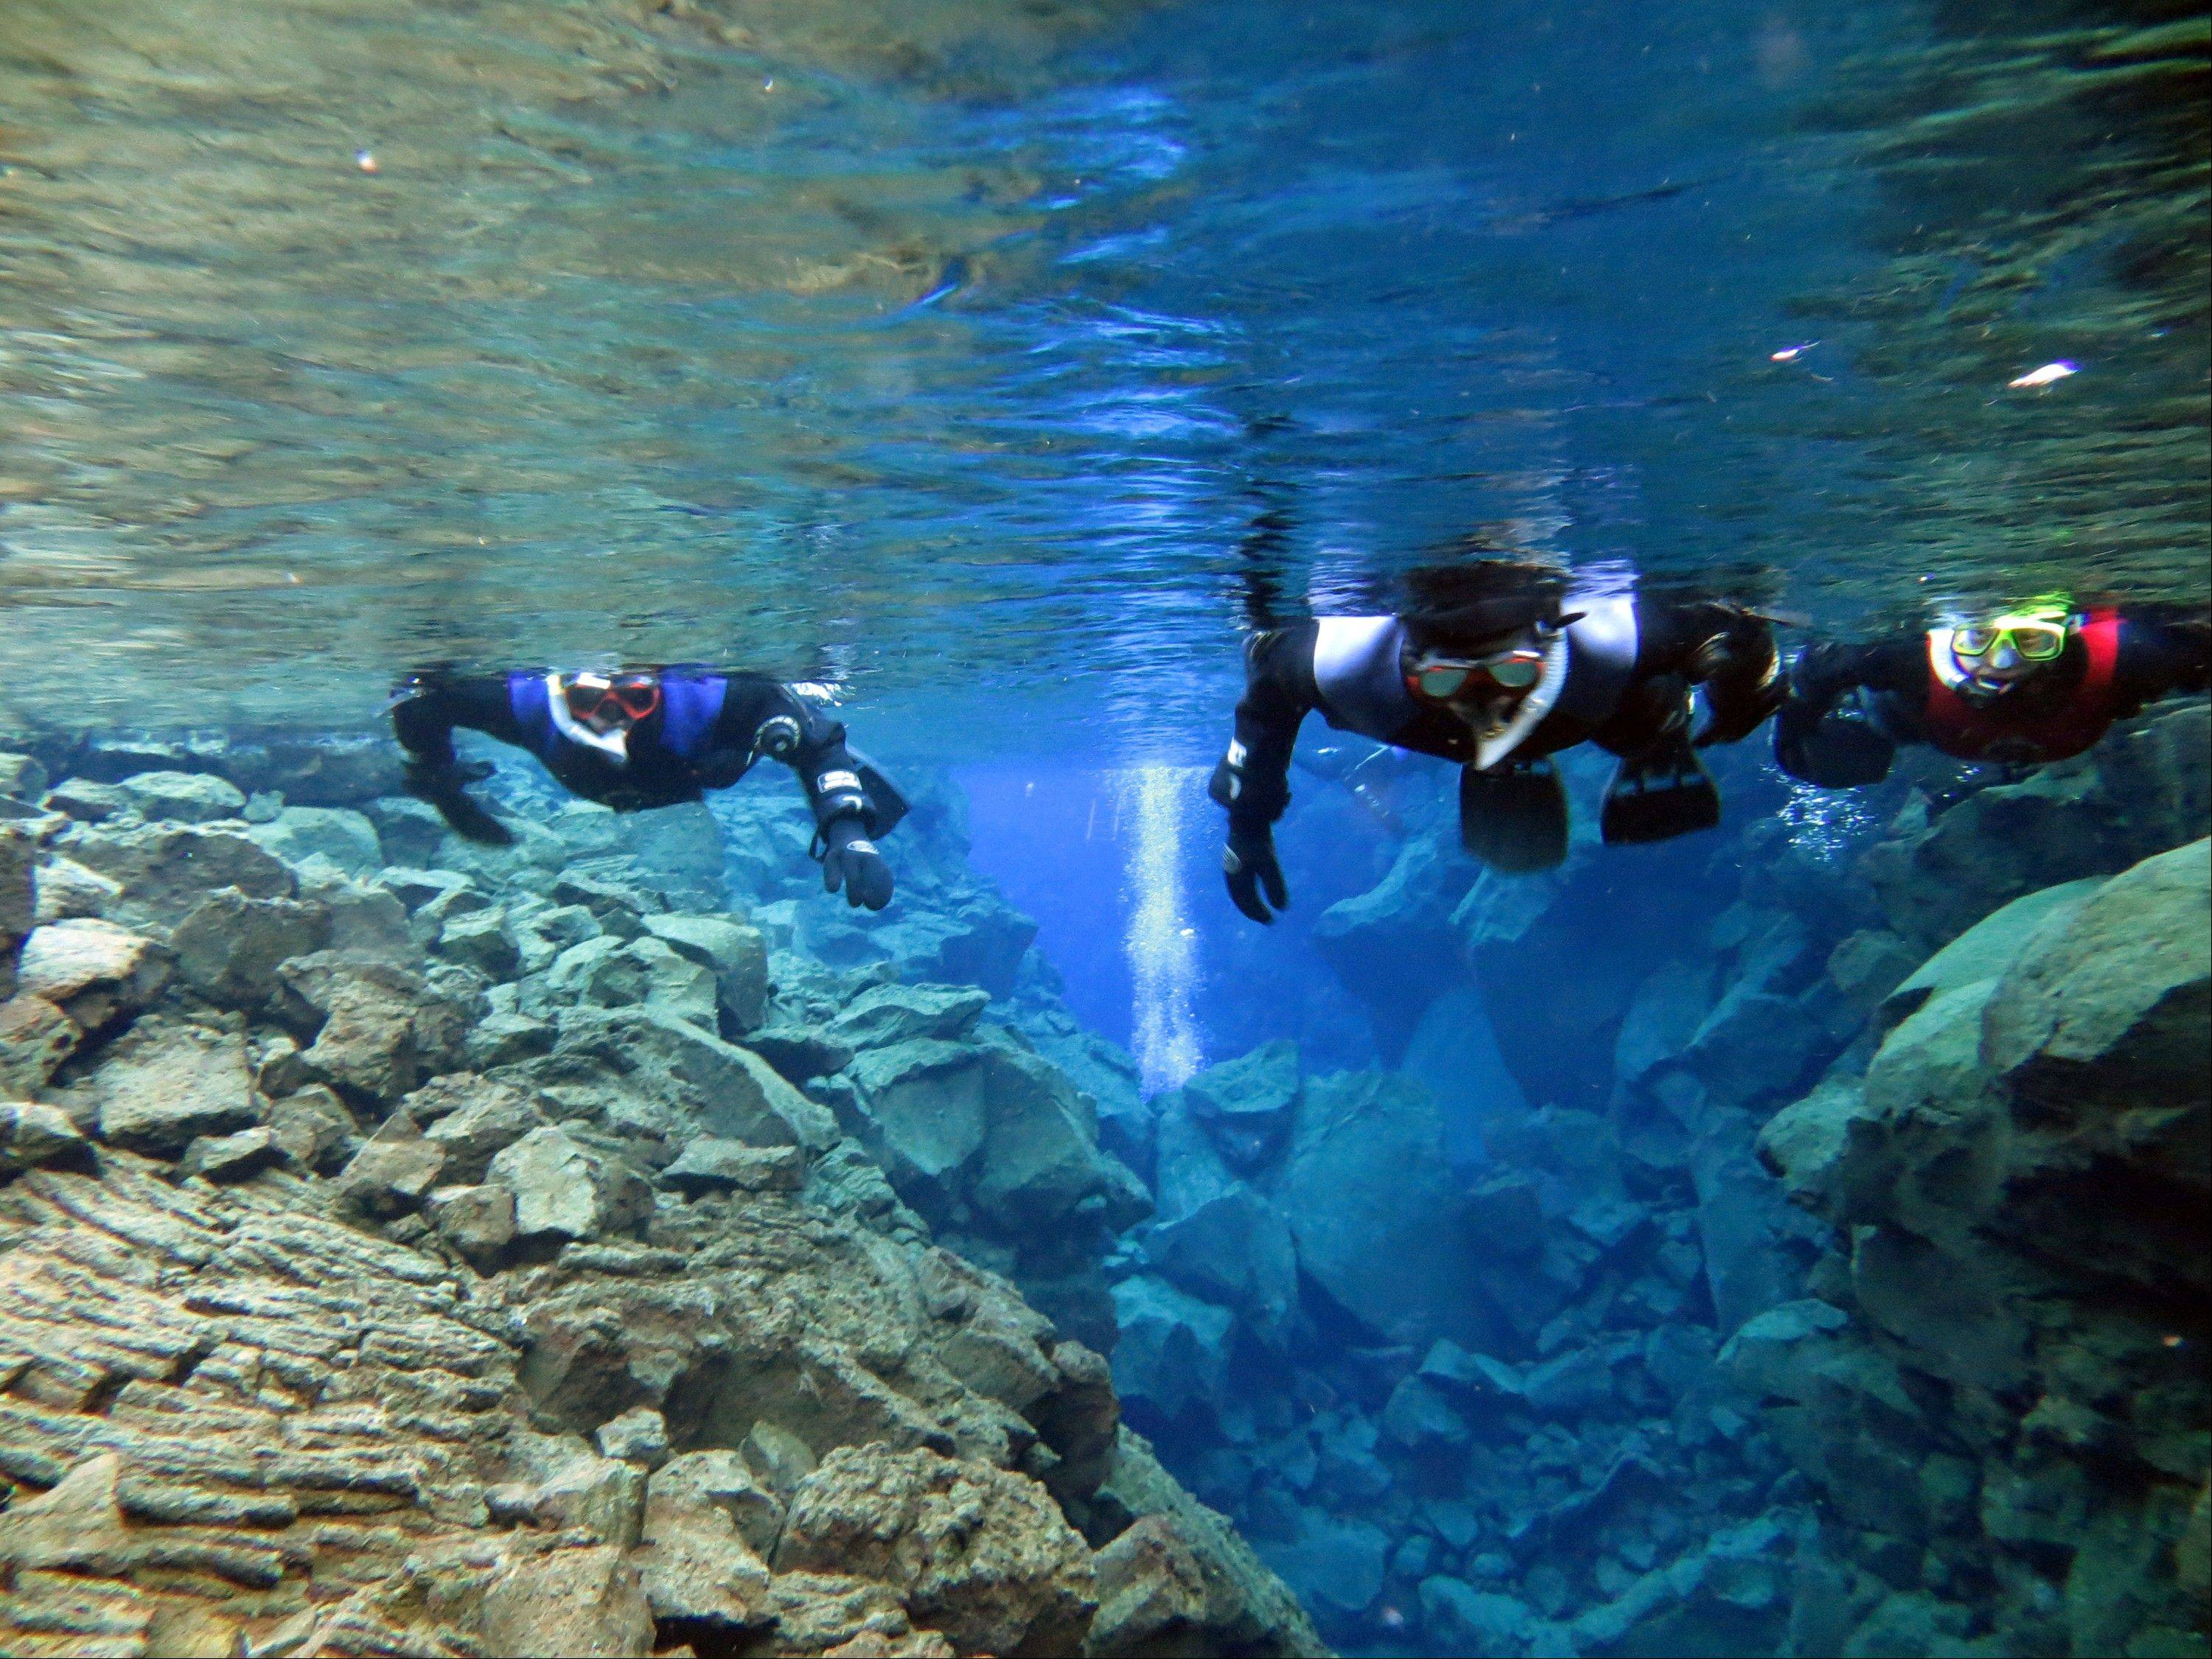 Snorkelers traverse Iceland's Silfra, a rift fed by glacier water. Because of its pure water and stunning colors, Silfra has become a popular site for divers despite near-freezing temperatures.